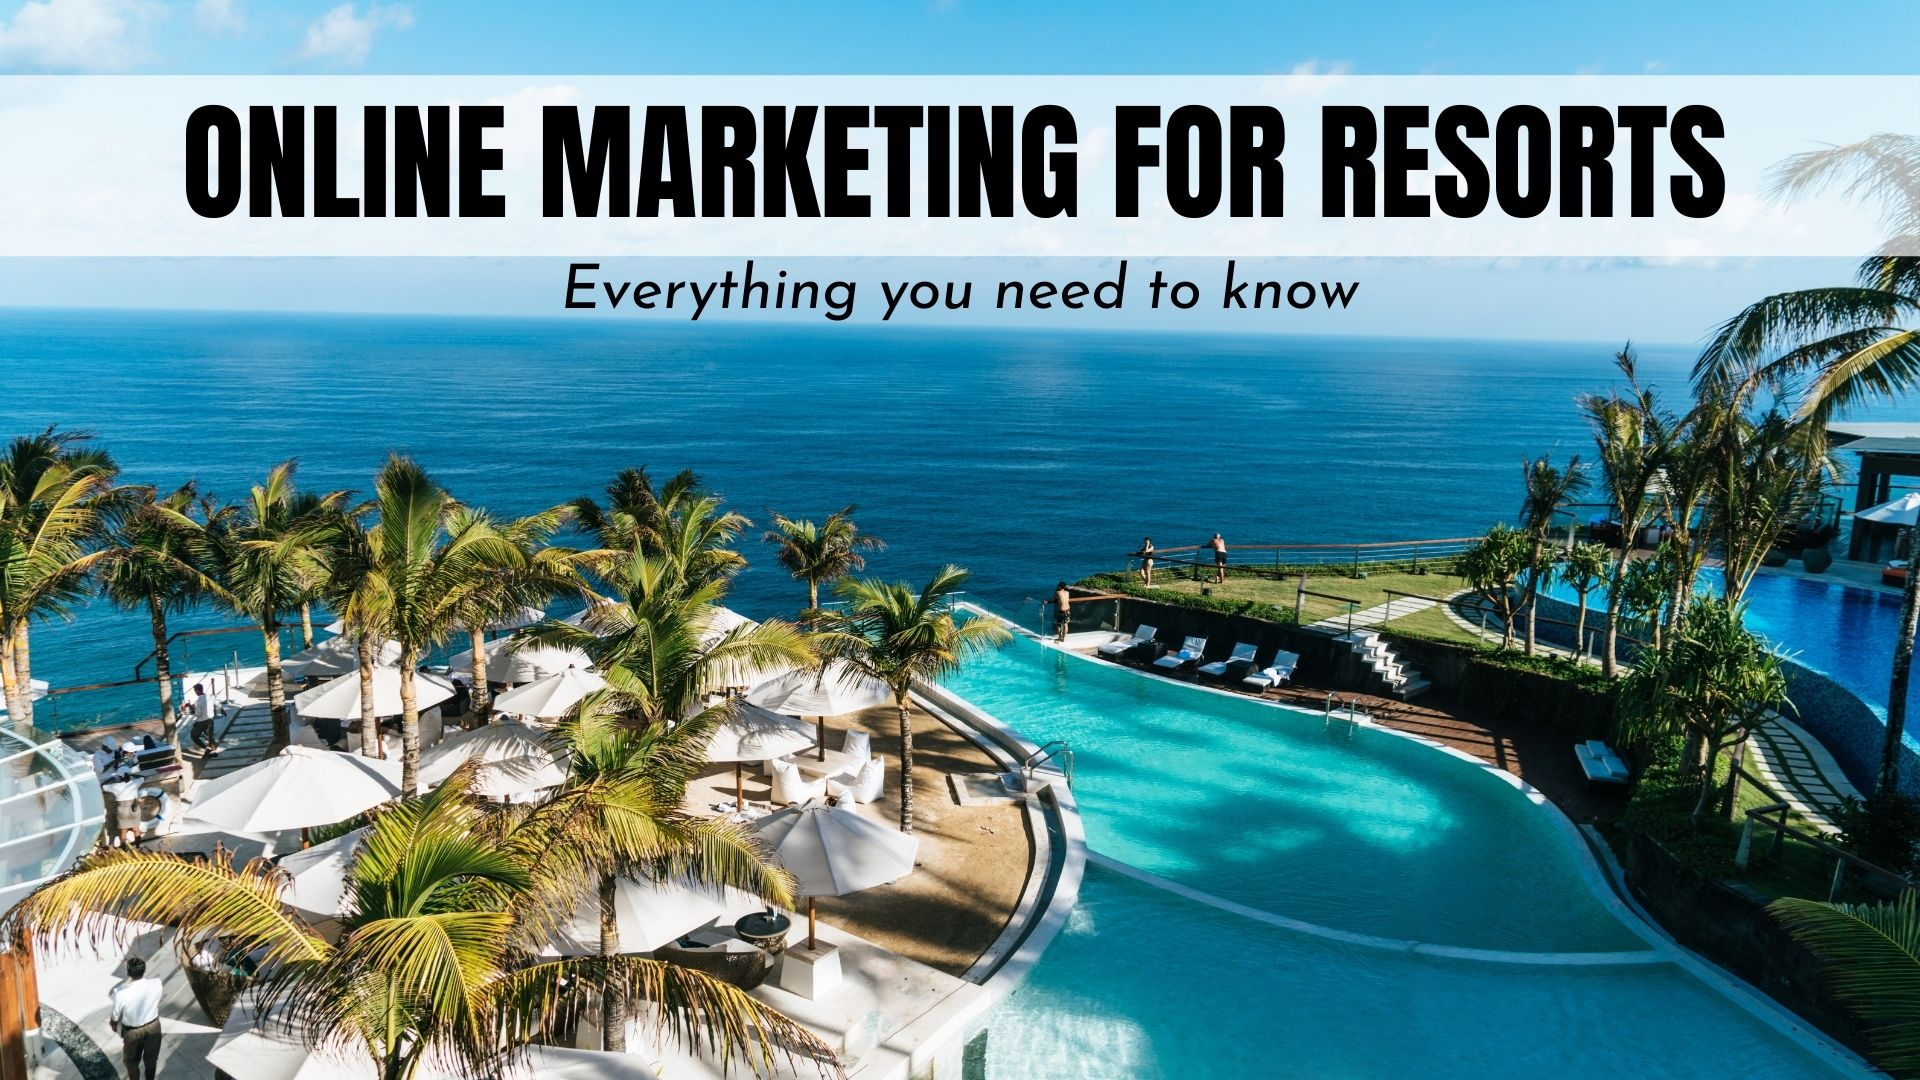 Marketing for Resorts: Everything You Need to Know